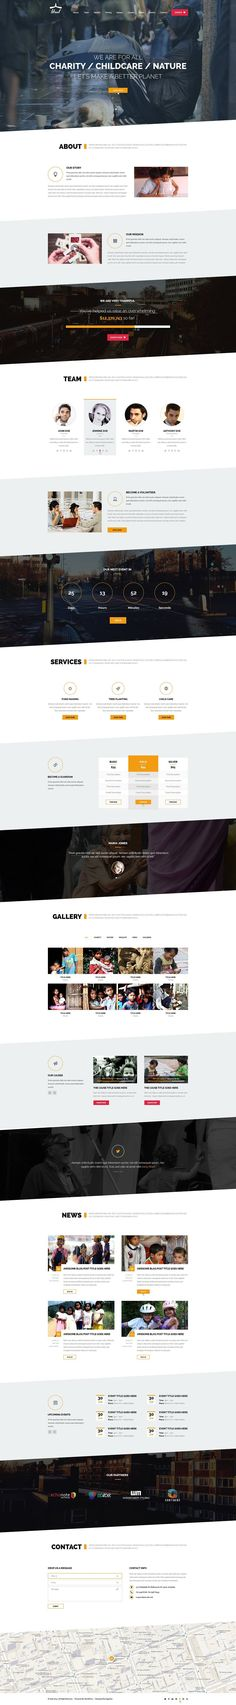 Collections of the Best WordPress Themes, Web Design Templates, Creative WordPress Themes, Top Business WordPress Themes, Best Premium WordPress Themes. Wordpress Website Design, Wordpress Theme Design, Best Wordpress Themes, Charity Websites, Charity Ideas, Web Design Examples, Design Web, Blog Design, Brand Design